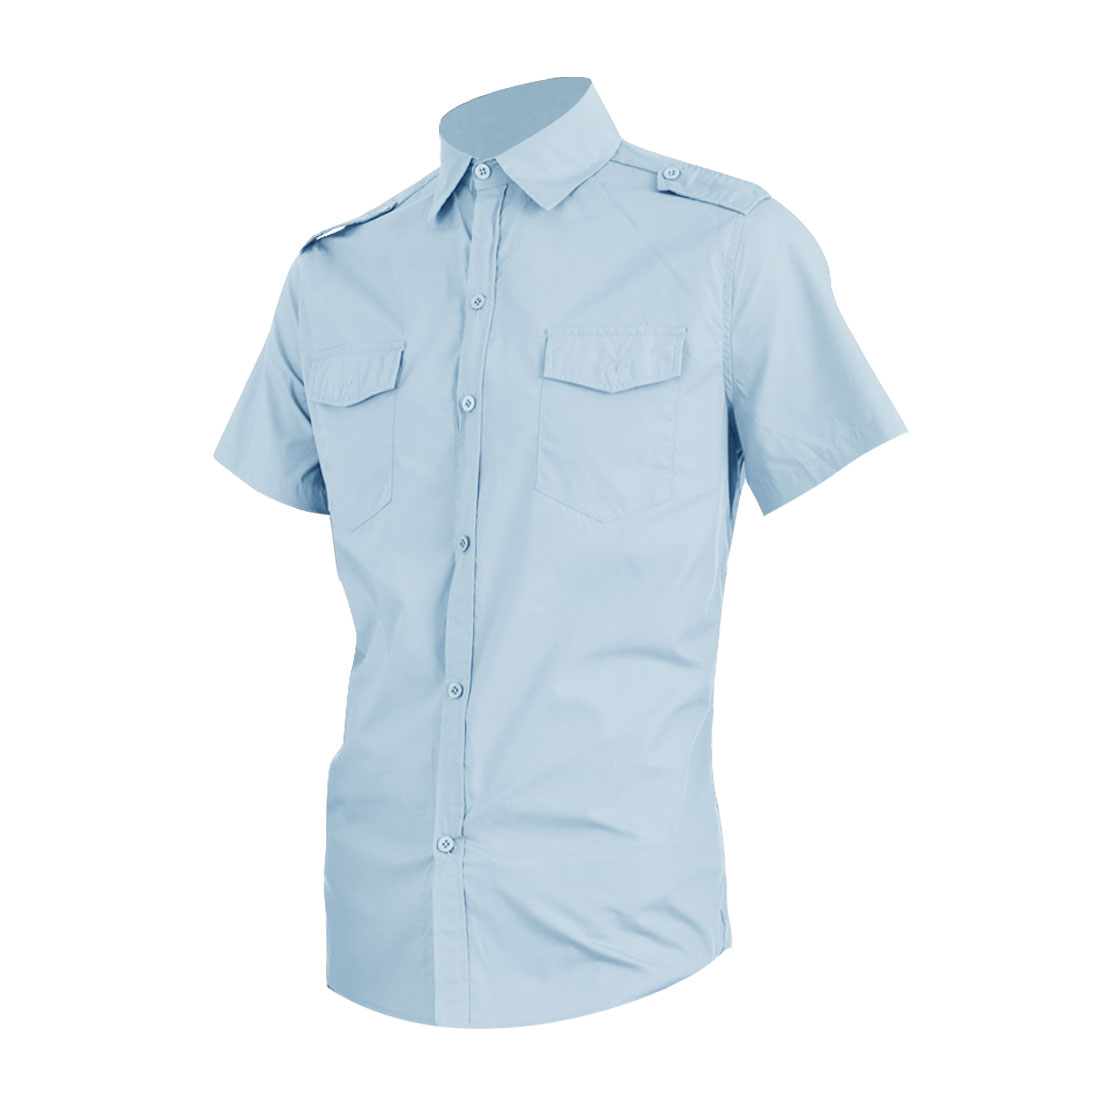 Men Chest Flap Pockets Single Breasted Spring Shirt Light Blue L